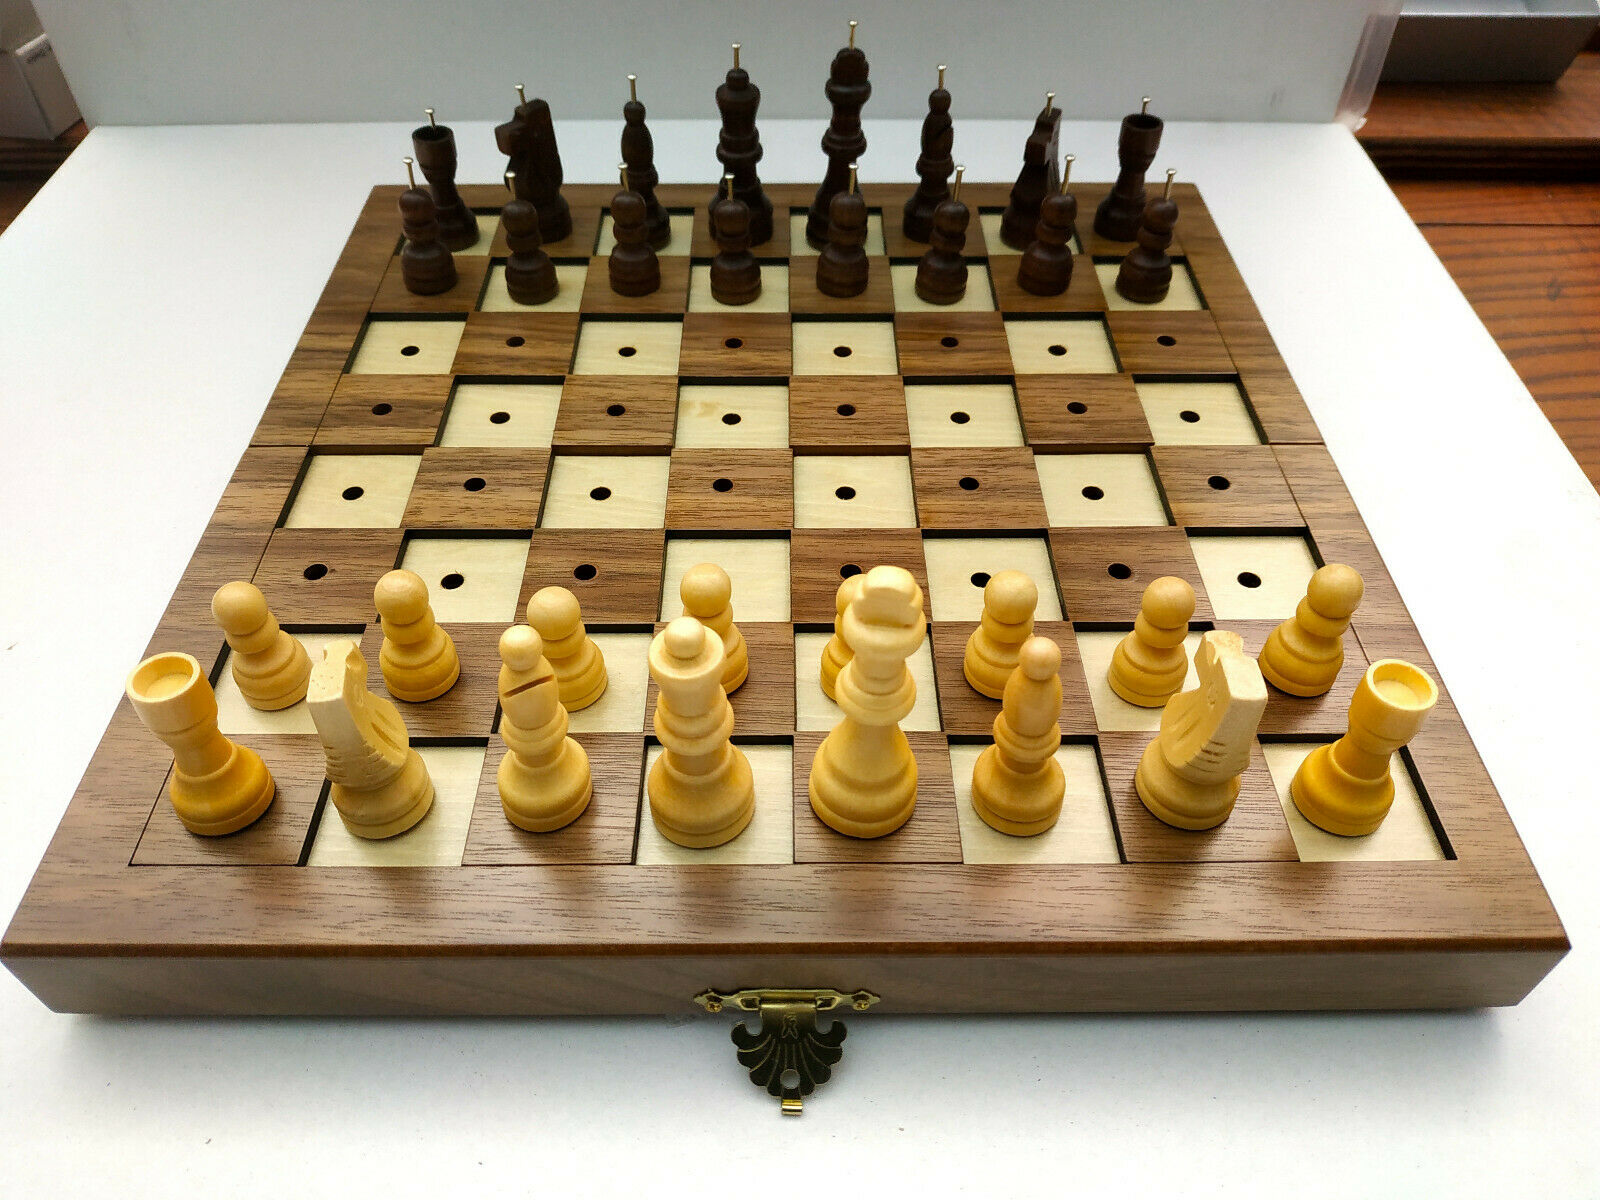 Wooden luxury chess board for Blind sight impairosso people